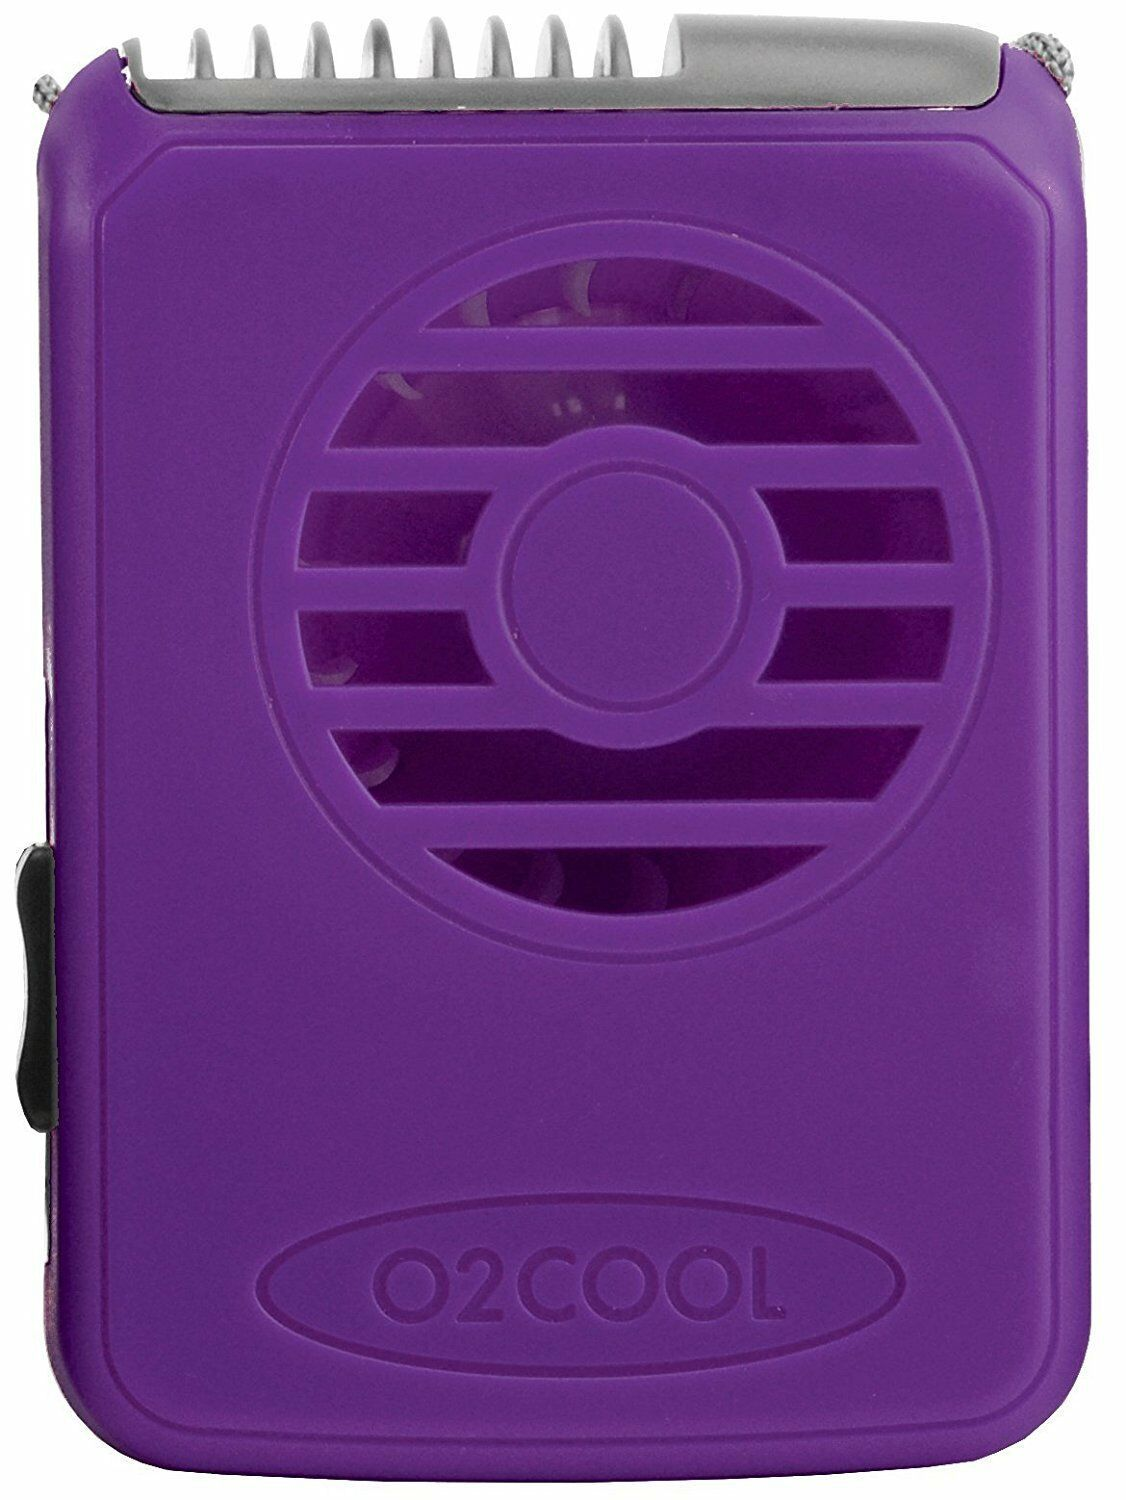 O2COOL Deluxe Necklace Fan with Breakaway Lanyard Battery Operated Purple  image 5